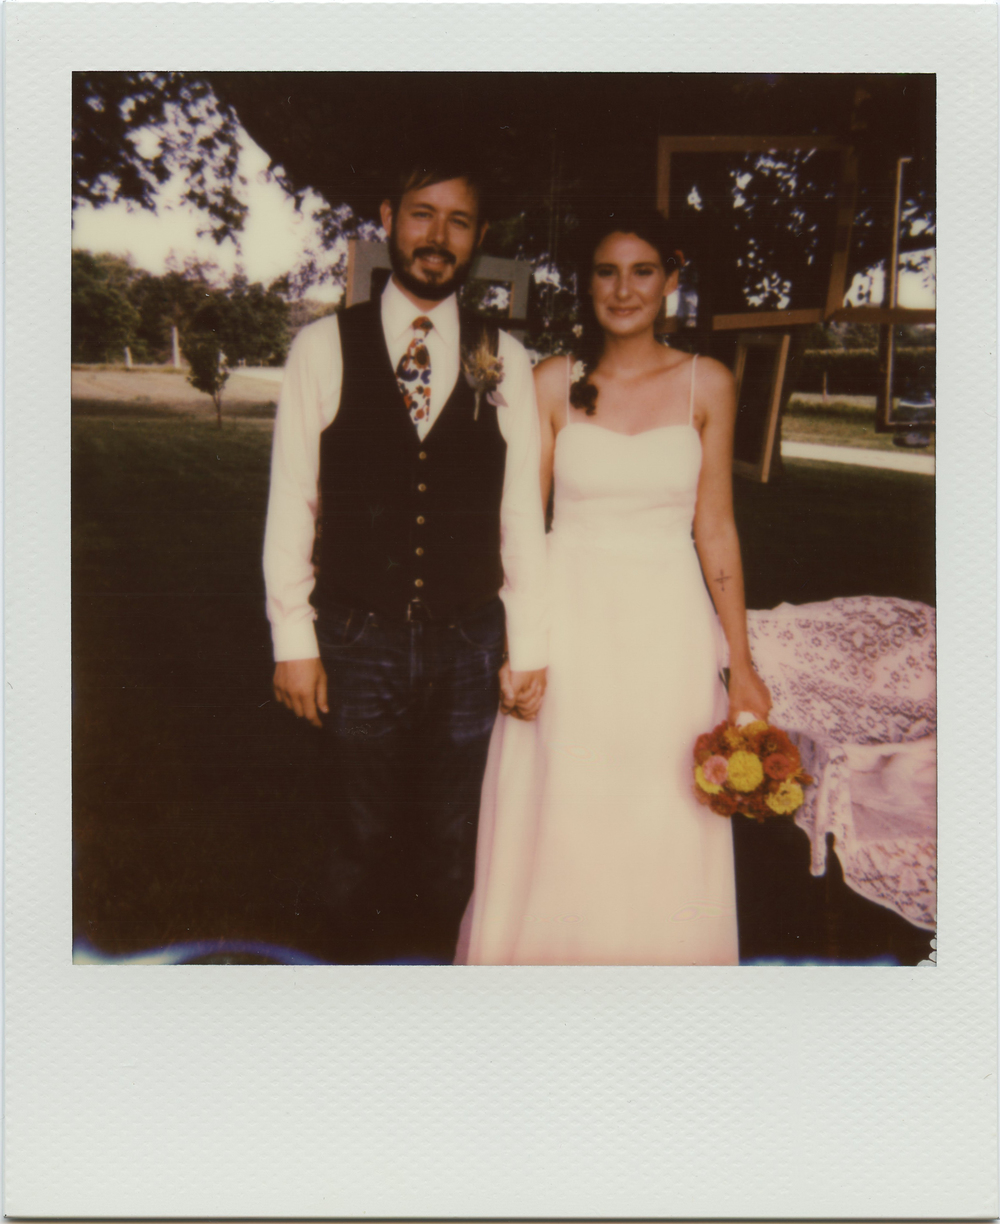 Polaroid-KelleyWillMarried.jpg